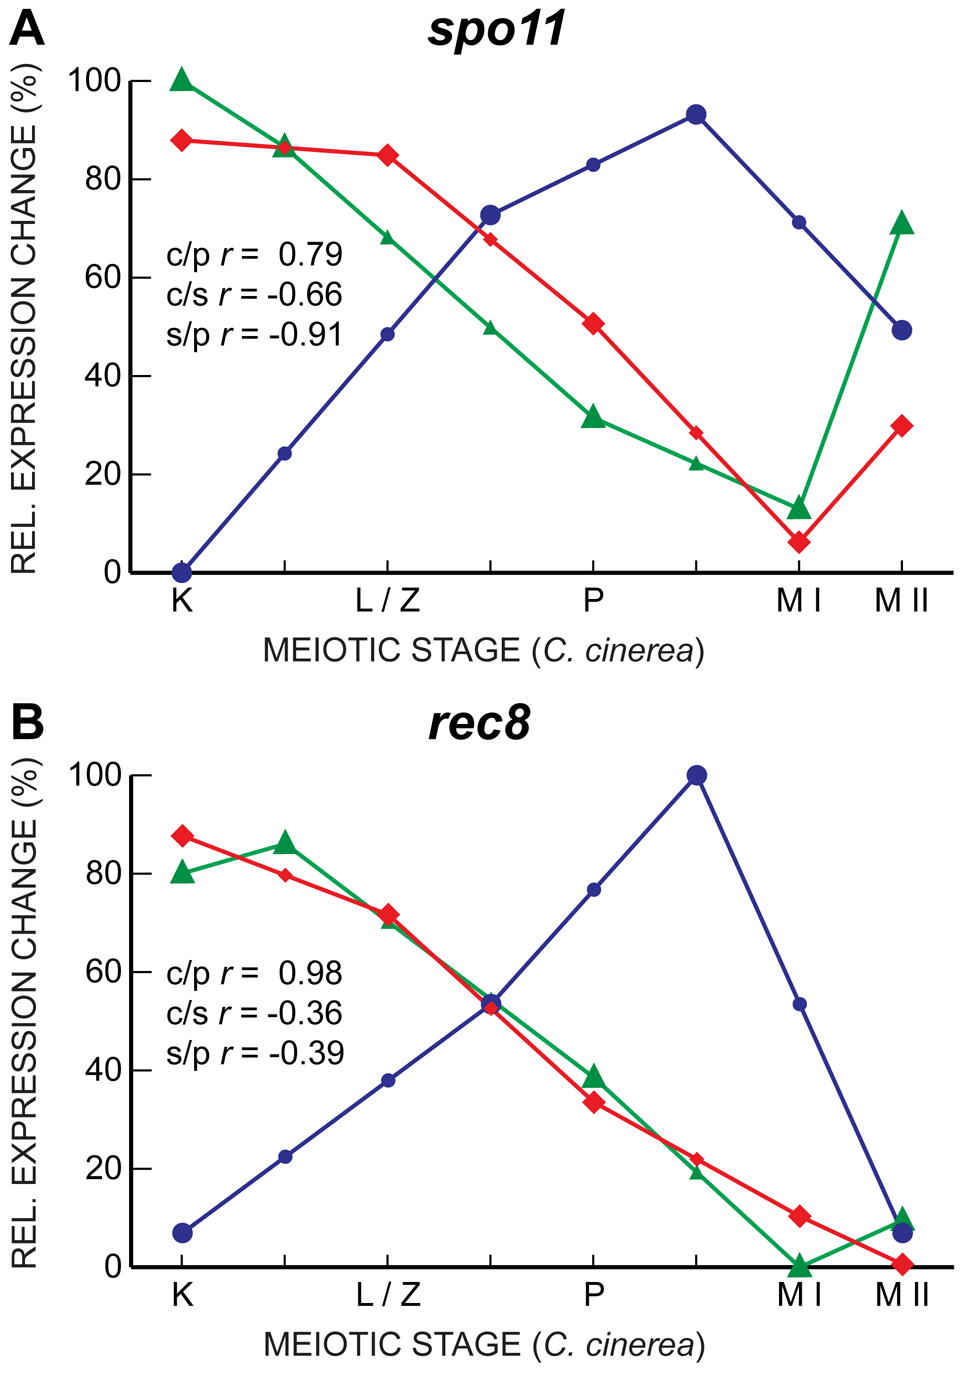 Gene expression in <i>spo11</i> and <i>rec8</i> are well-correlated only between <i>C. cinerea</i> and <i>S. pombe</i>.